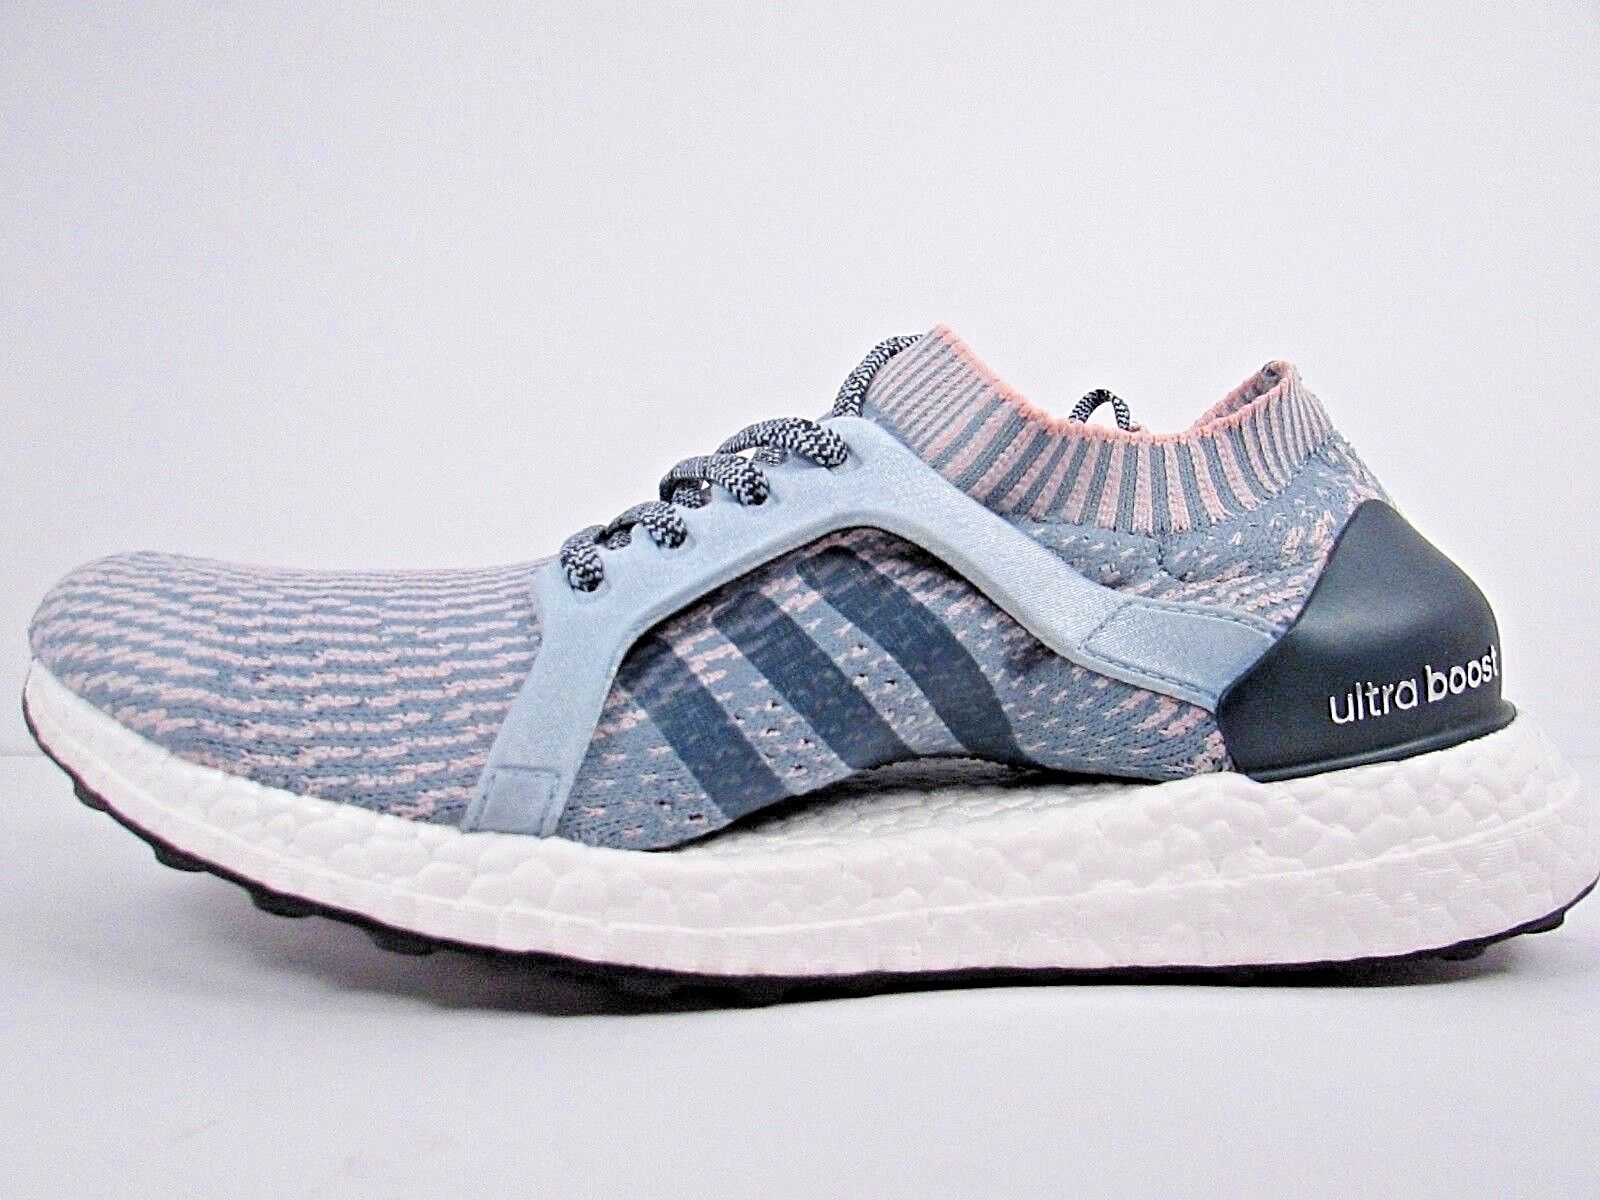 WOMEN'S ADIDAS ULTRABOOST X   !!BRAND NEW!! WITHOUT BOX!!RUNNING SHOES!!